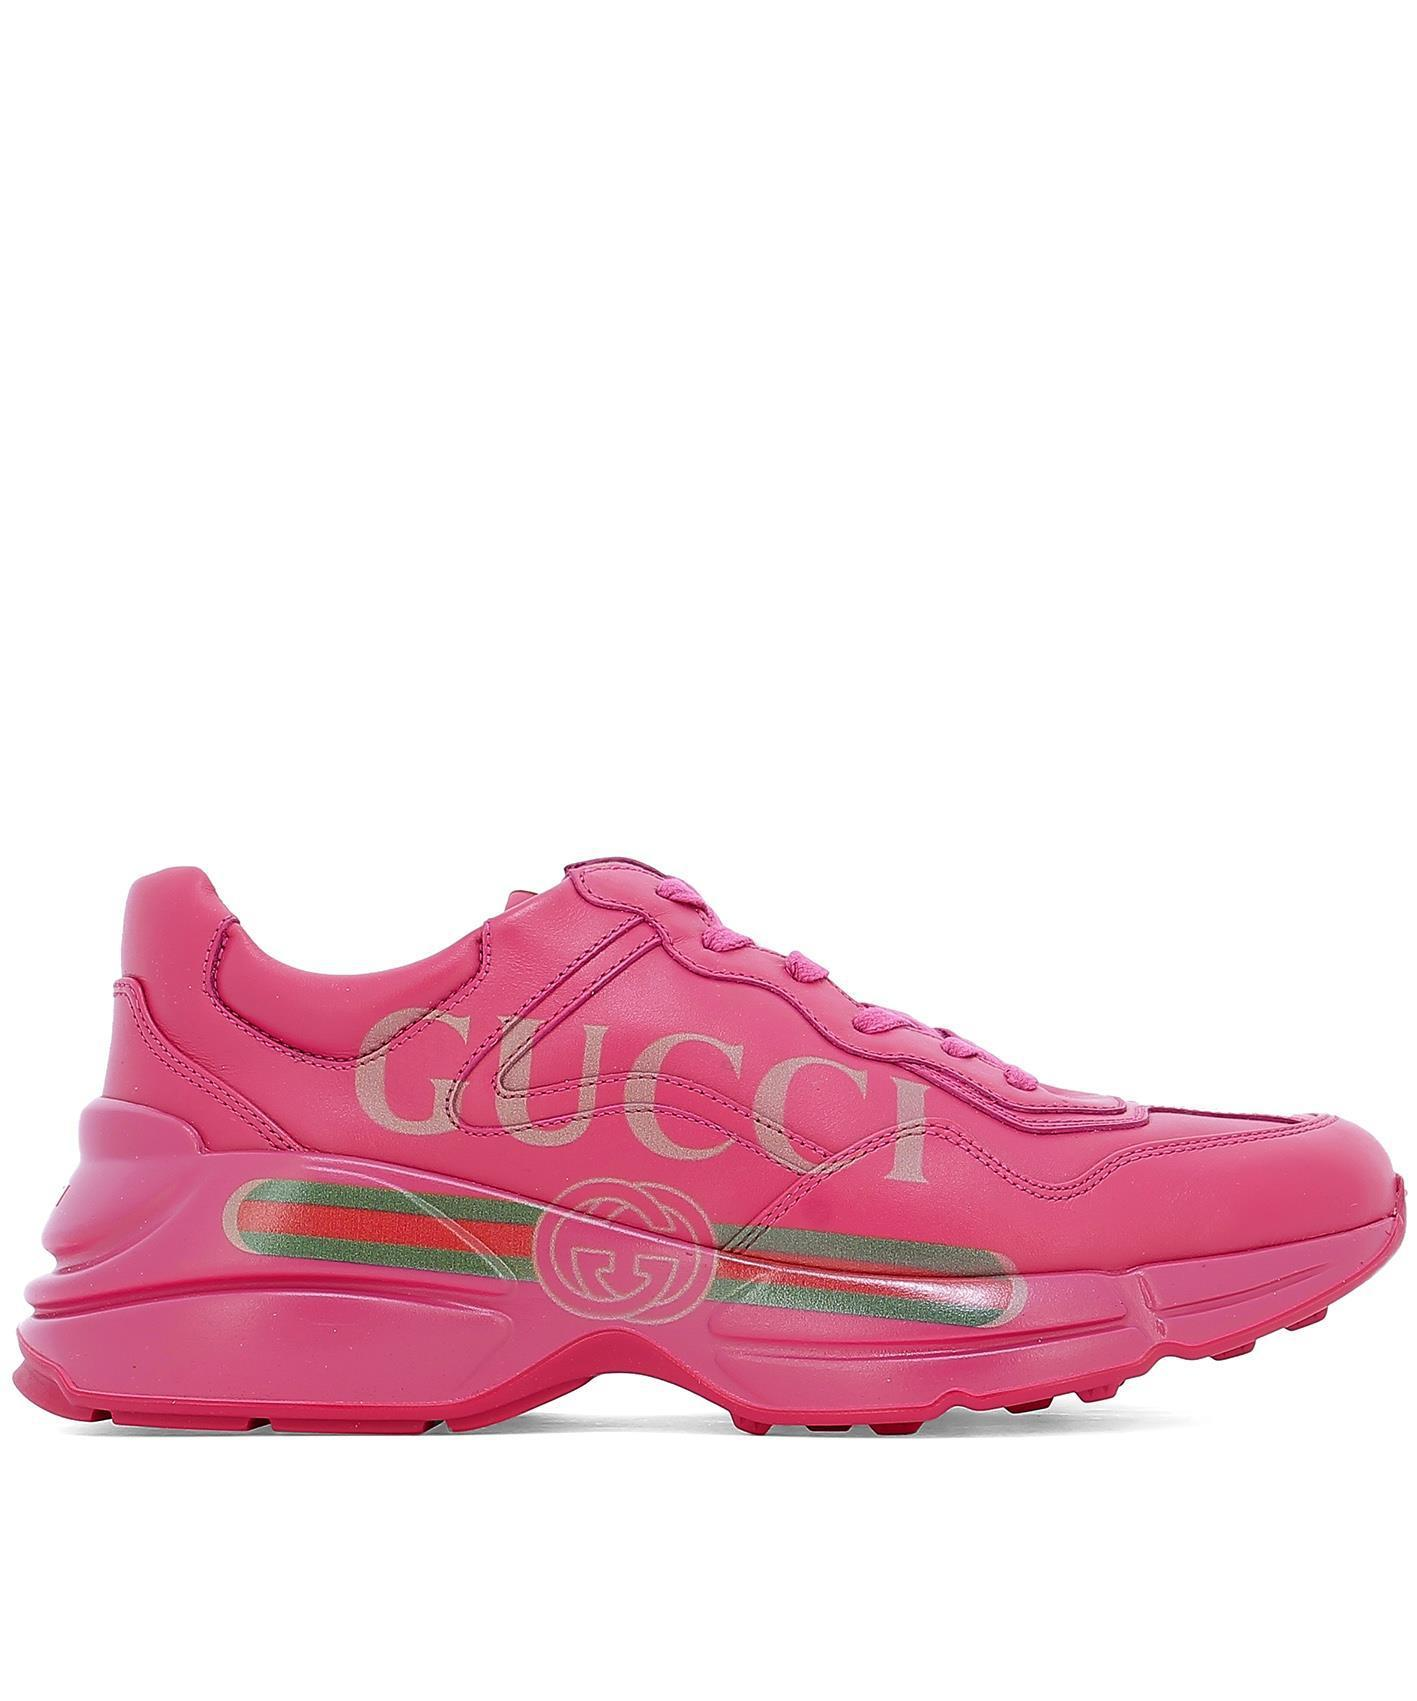 6c0fcd45a52 Gucci Rhyton Sneakers in Pink for Men - Lyst